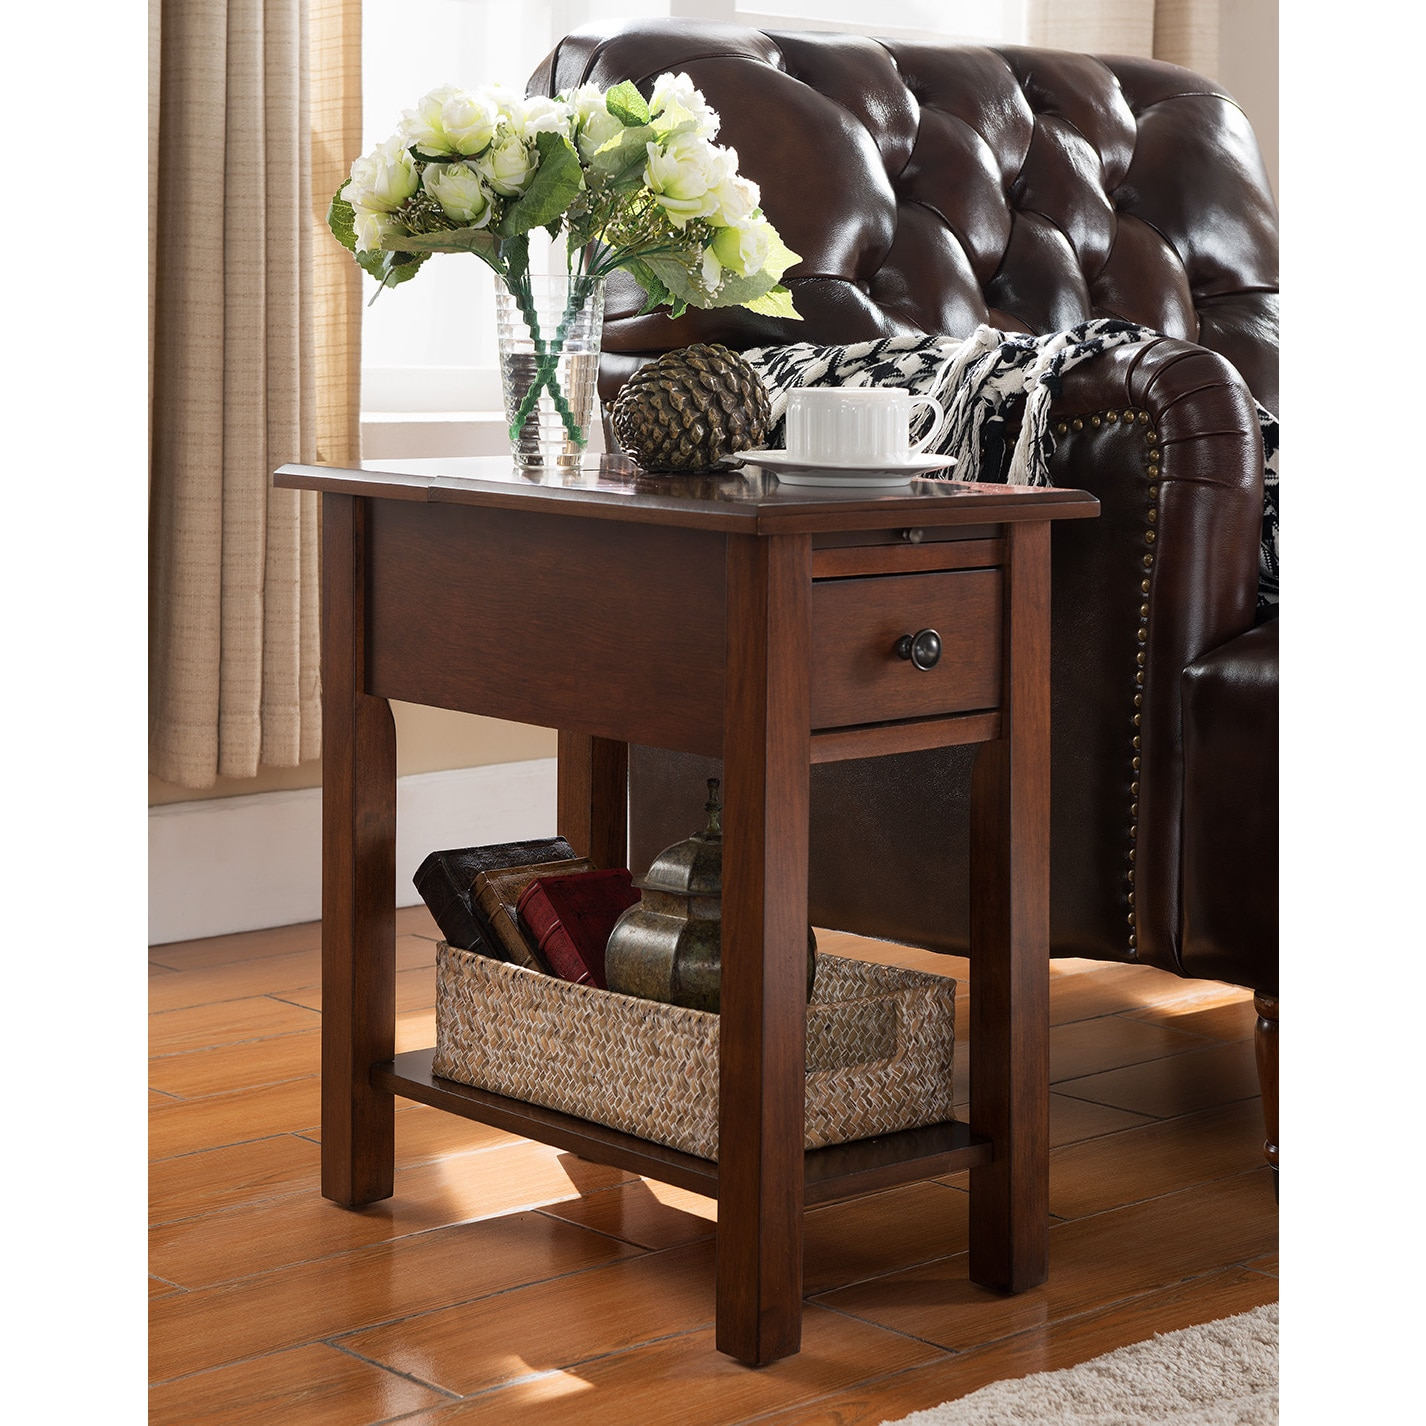 Copper Grove Ballingall Espresso Side Table with Charging Station (Espresso)